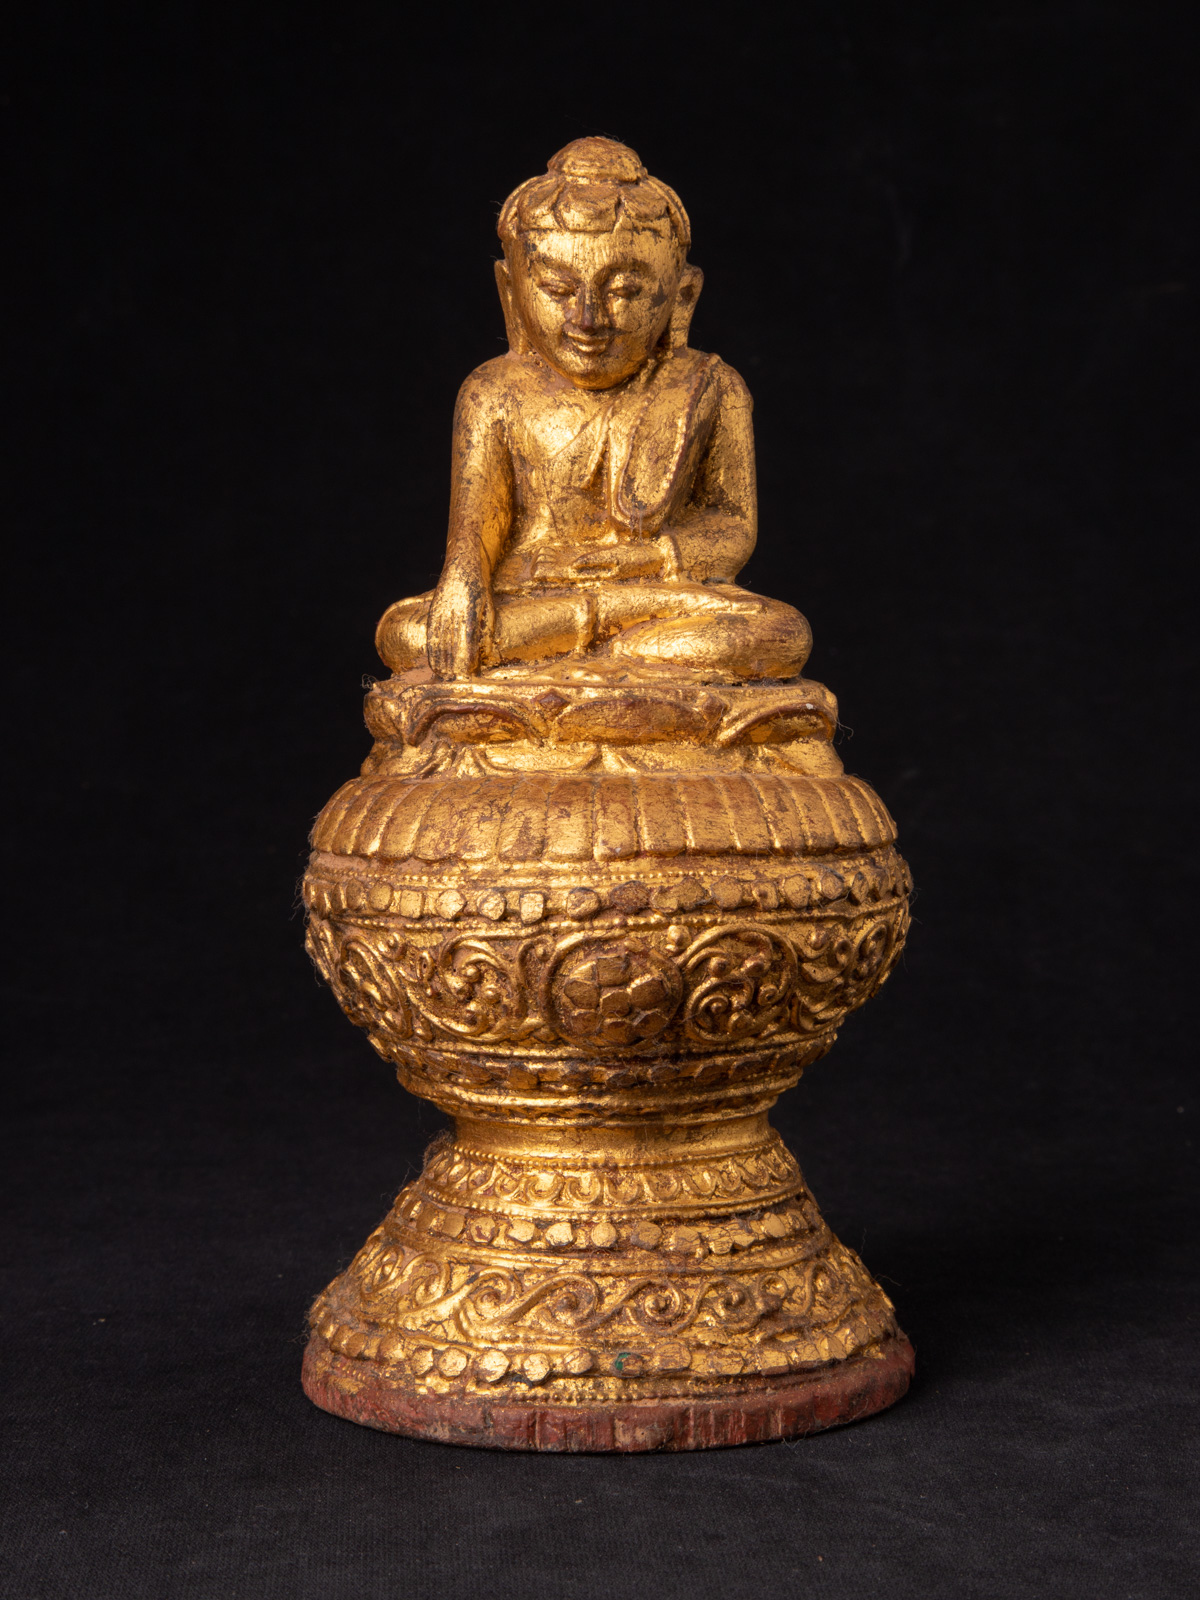 Old wooden Burmese Buddha from Burma made from Wood